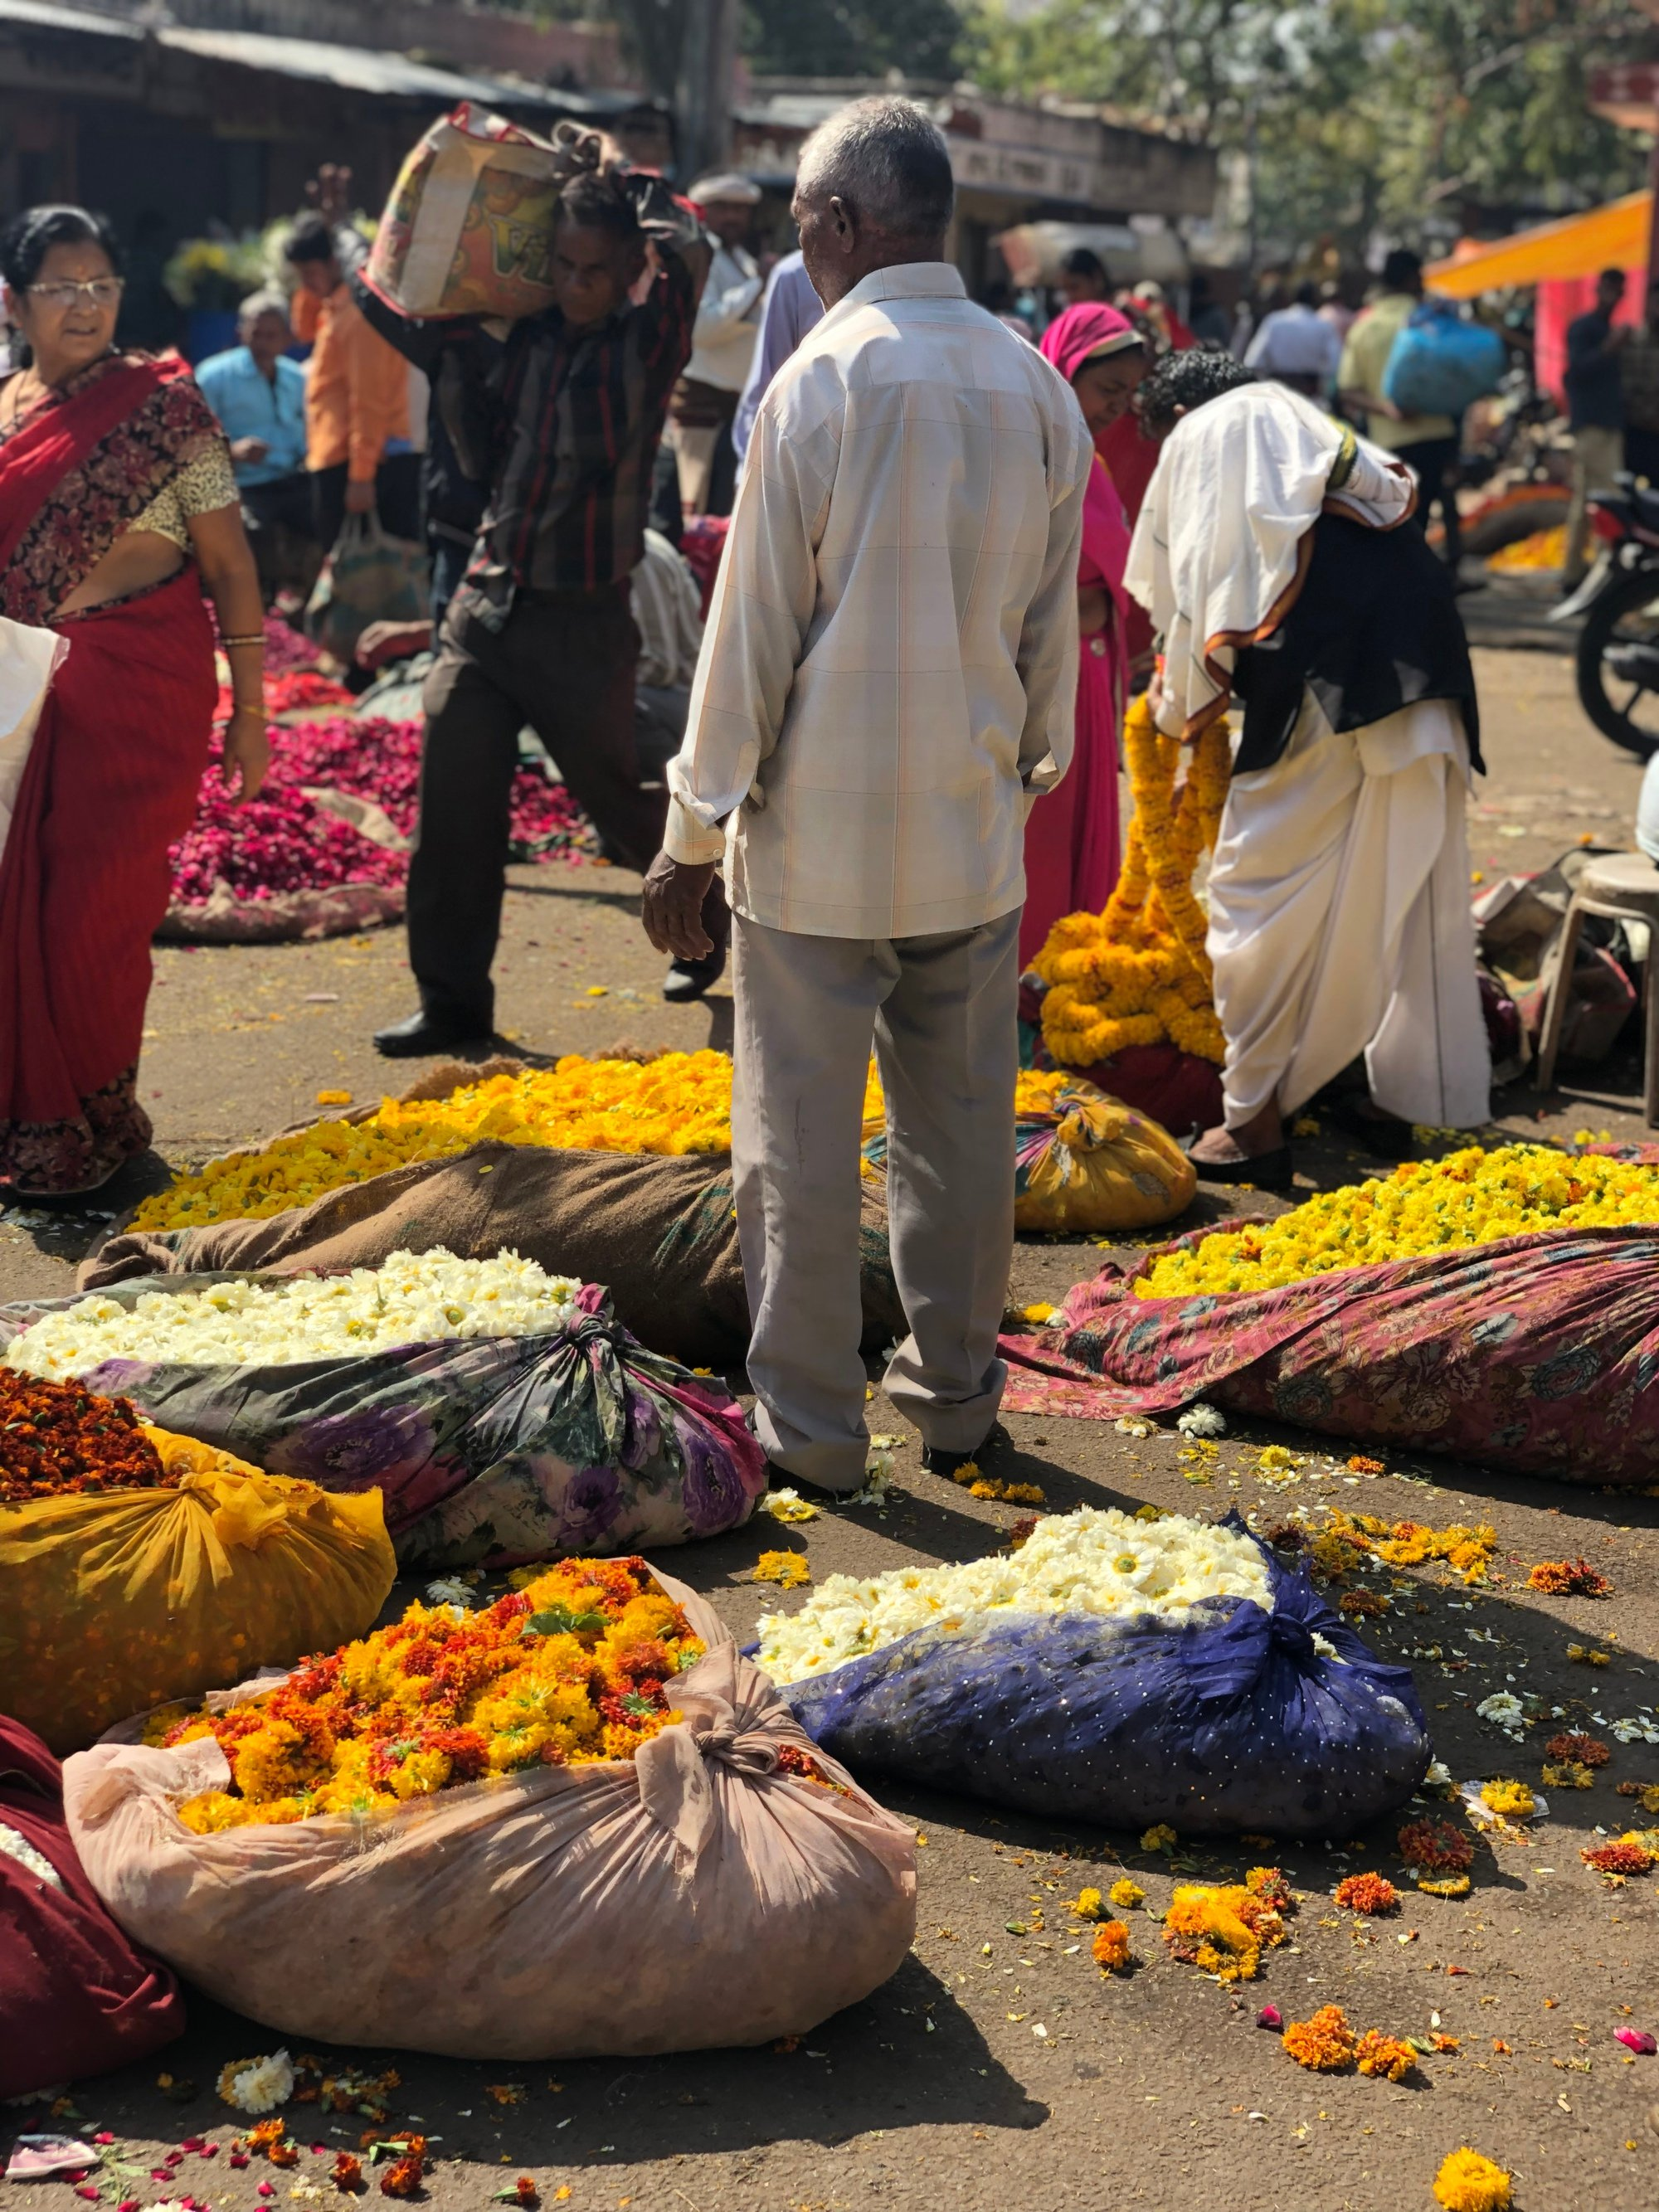 Man in Jaipur flower market with marigolds for Holi Festival